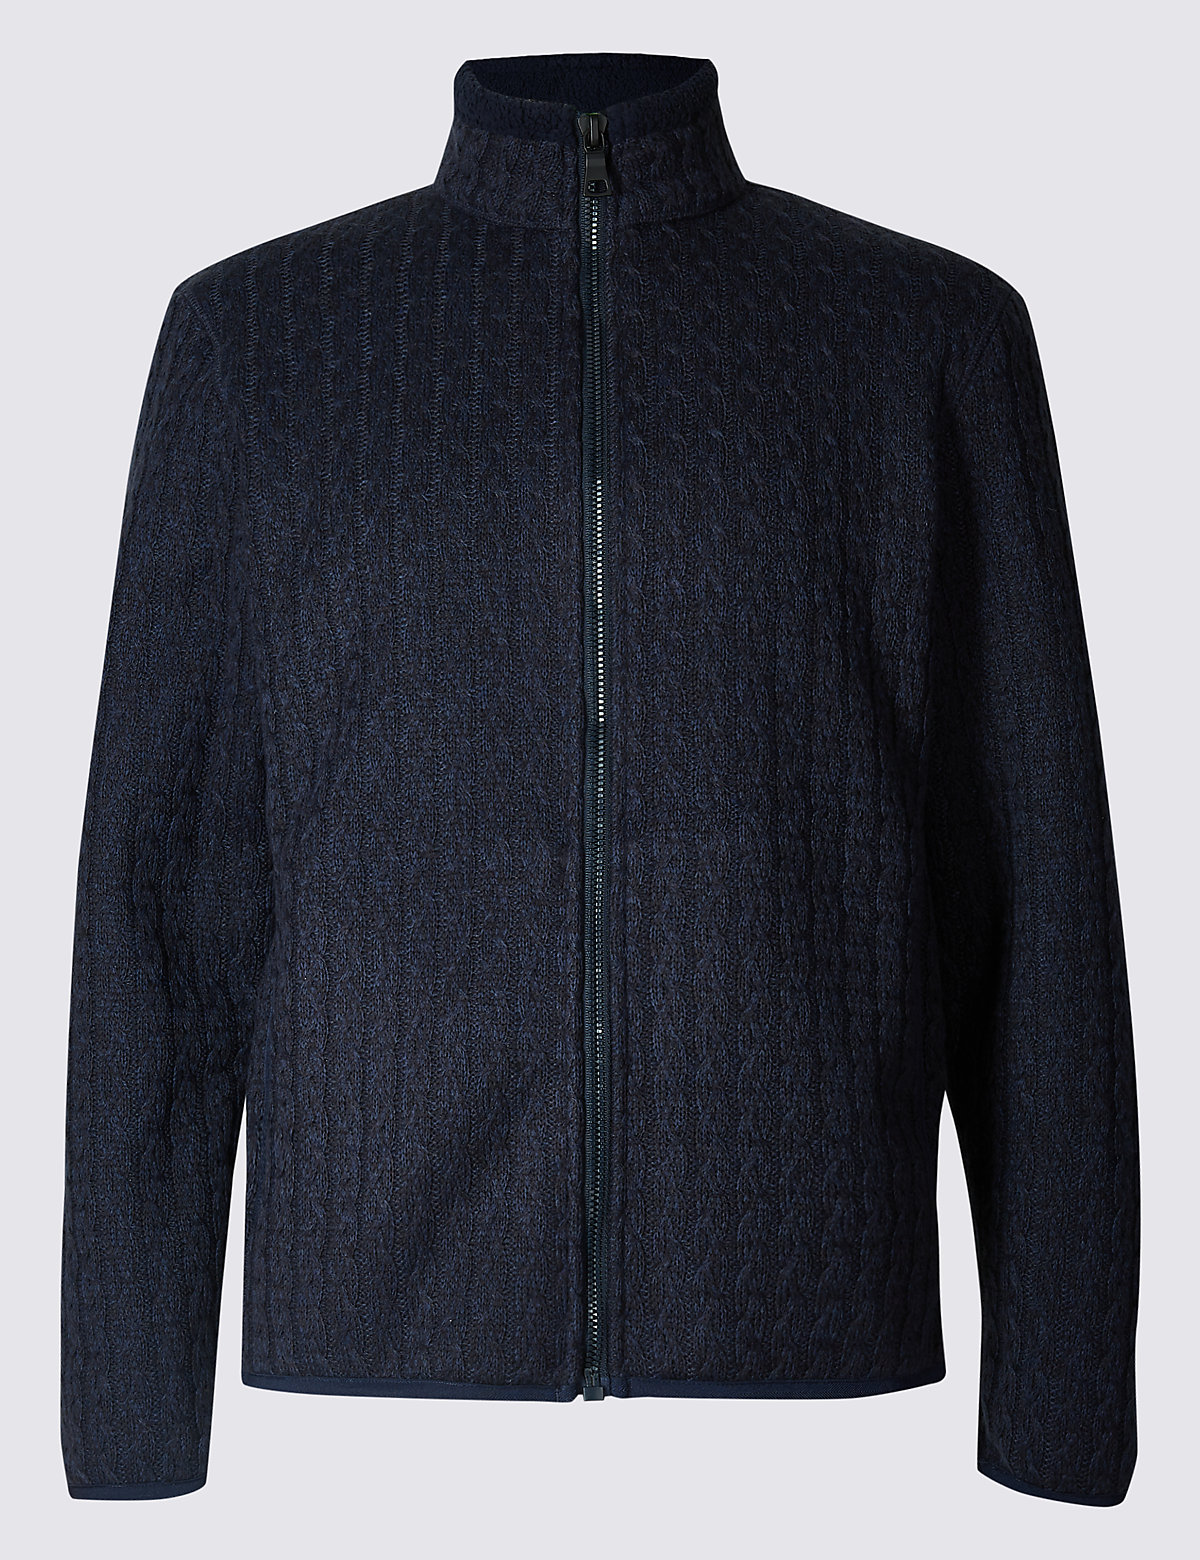 Marks & Spencer Navy Mix Cable Knit Zip Through Jacket with Stormwear™